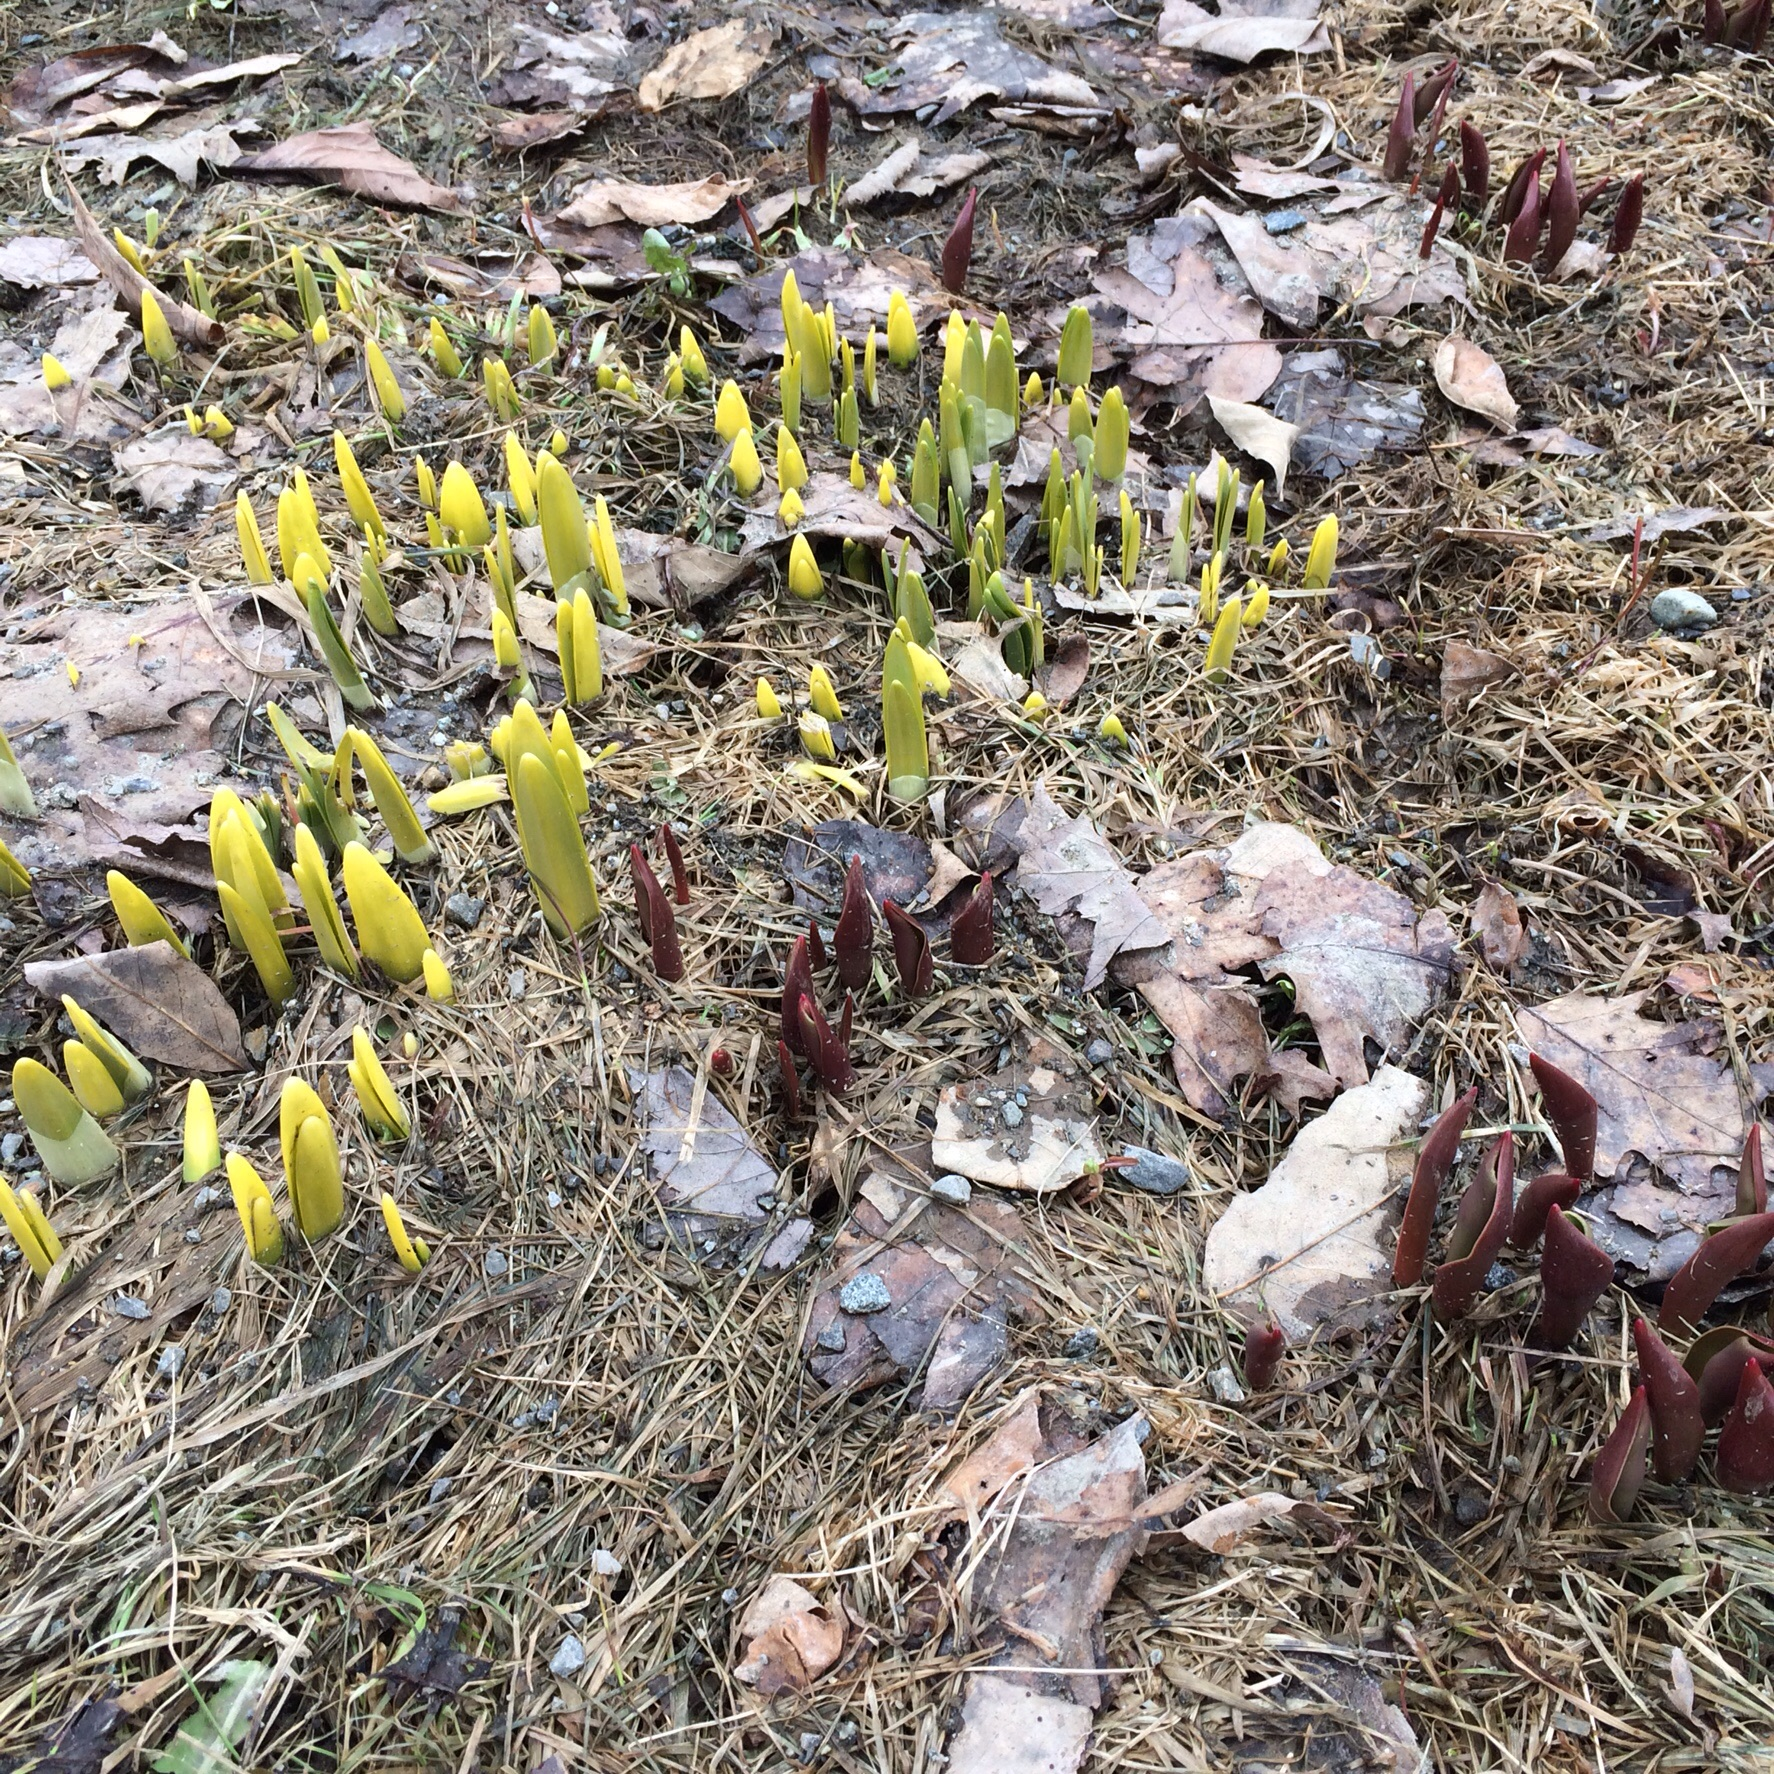 Previous owners planted tulips and daffodils. While we didn't live here last spring, we were here constantly working on renovations so I know these will all come up bright, cheery yellow. Can't wait!